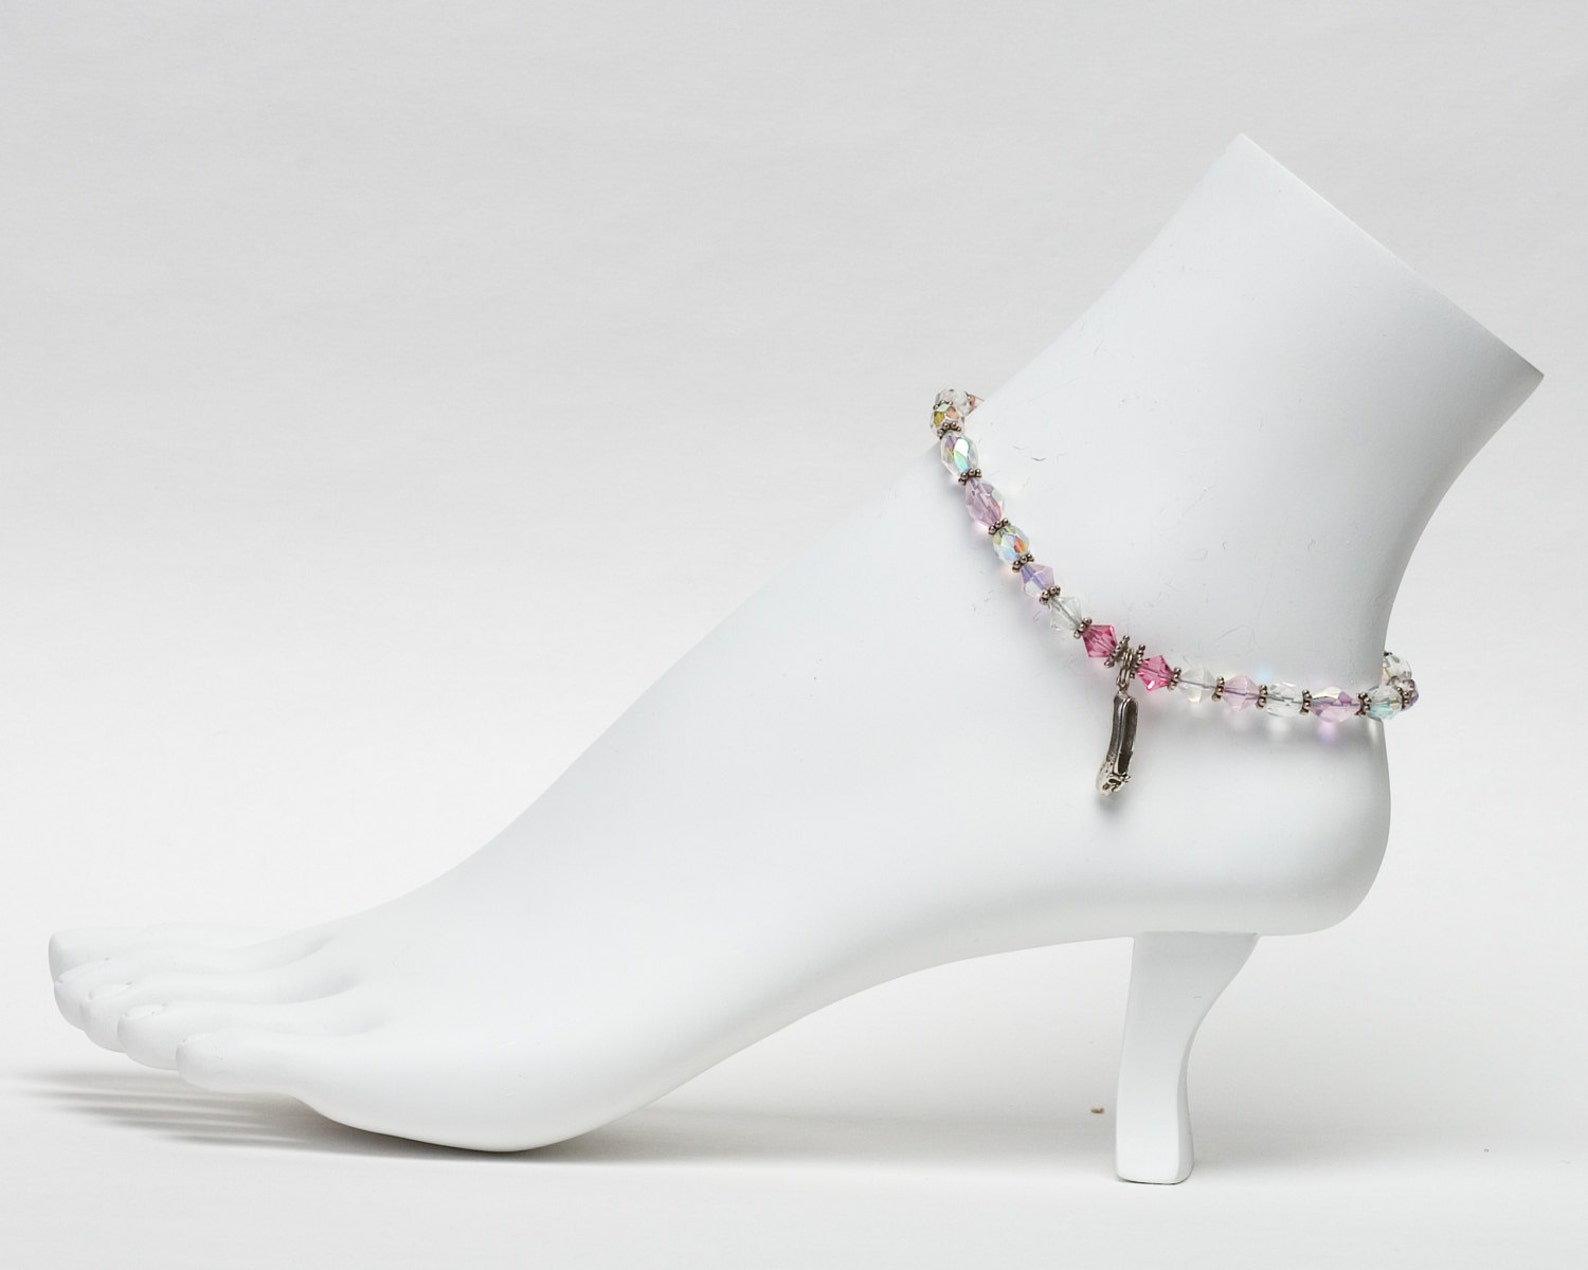 crystal ballerina anklet with ballet slipper charm